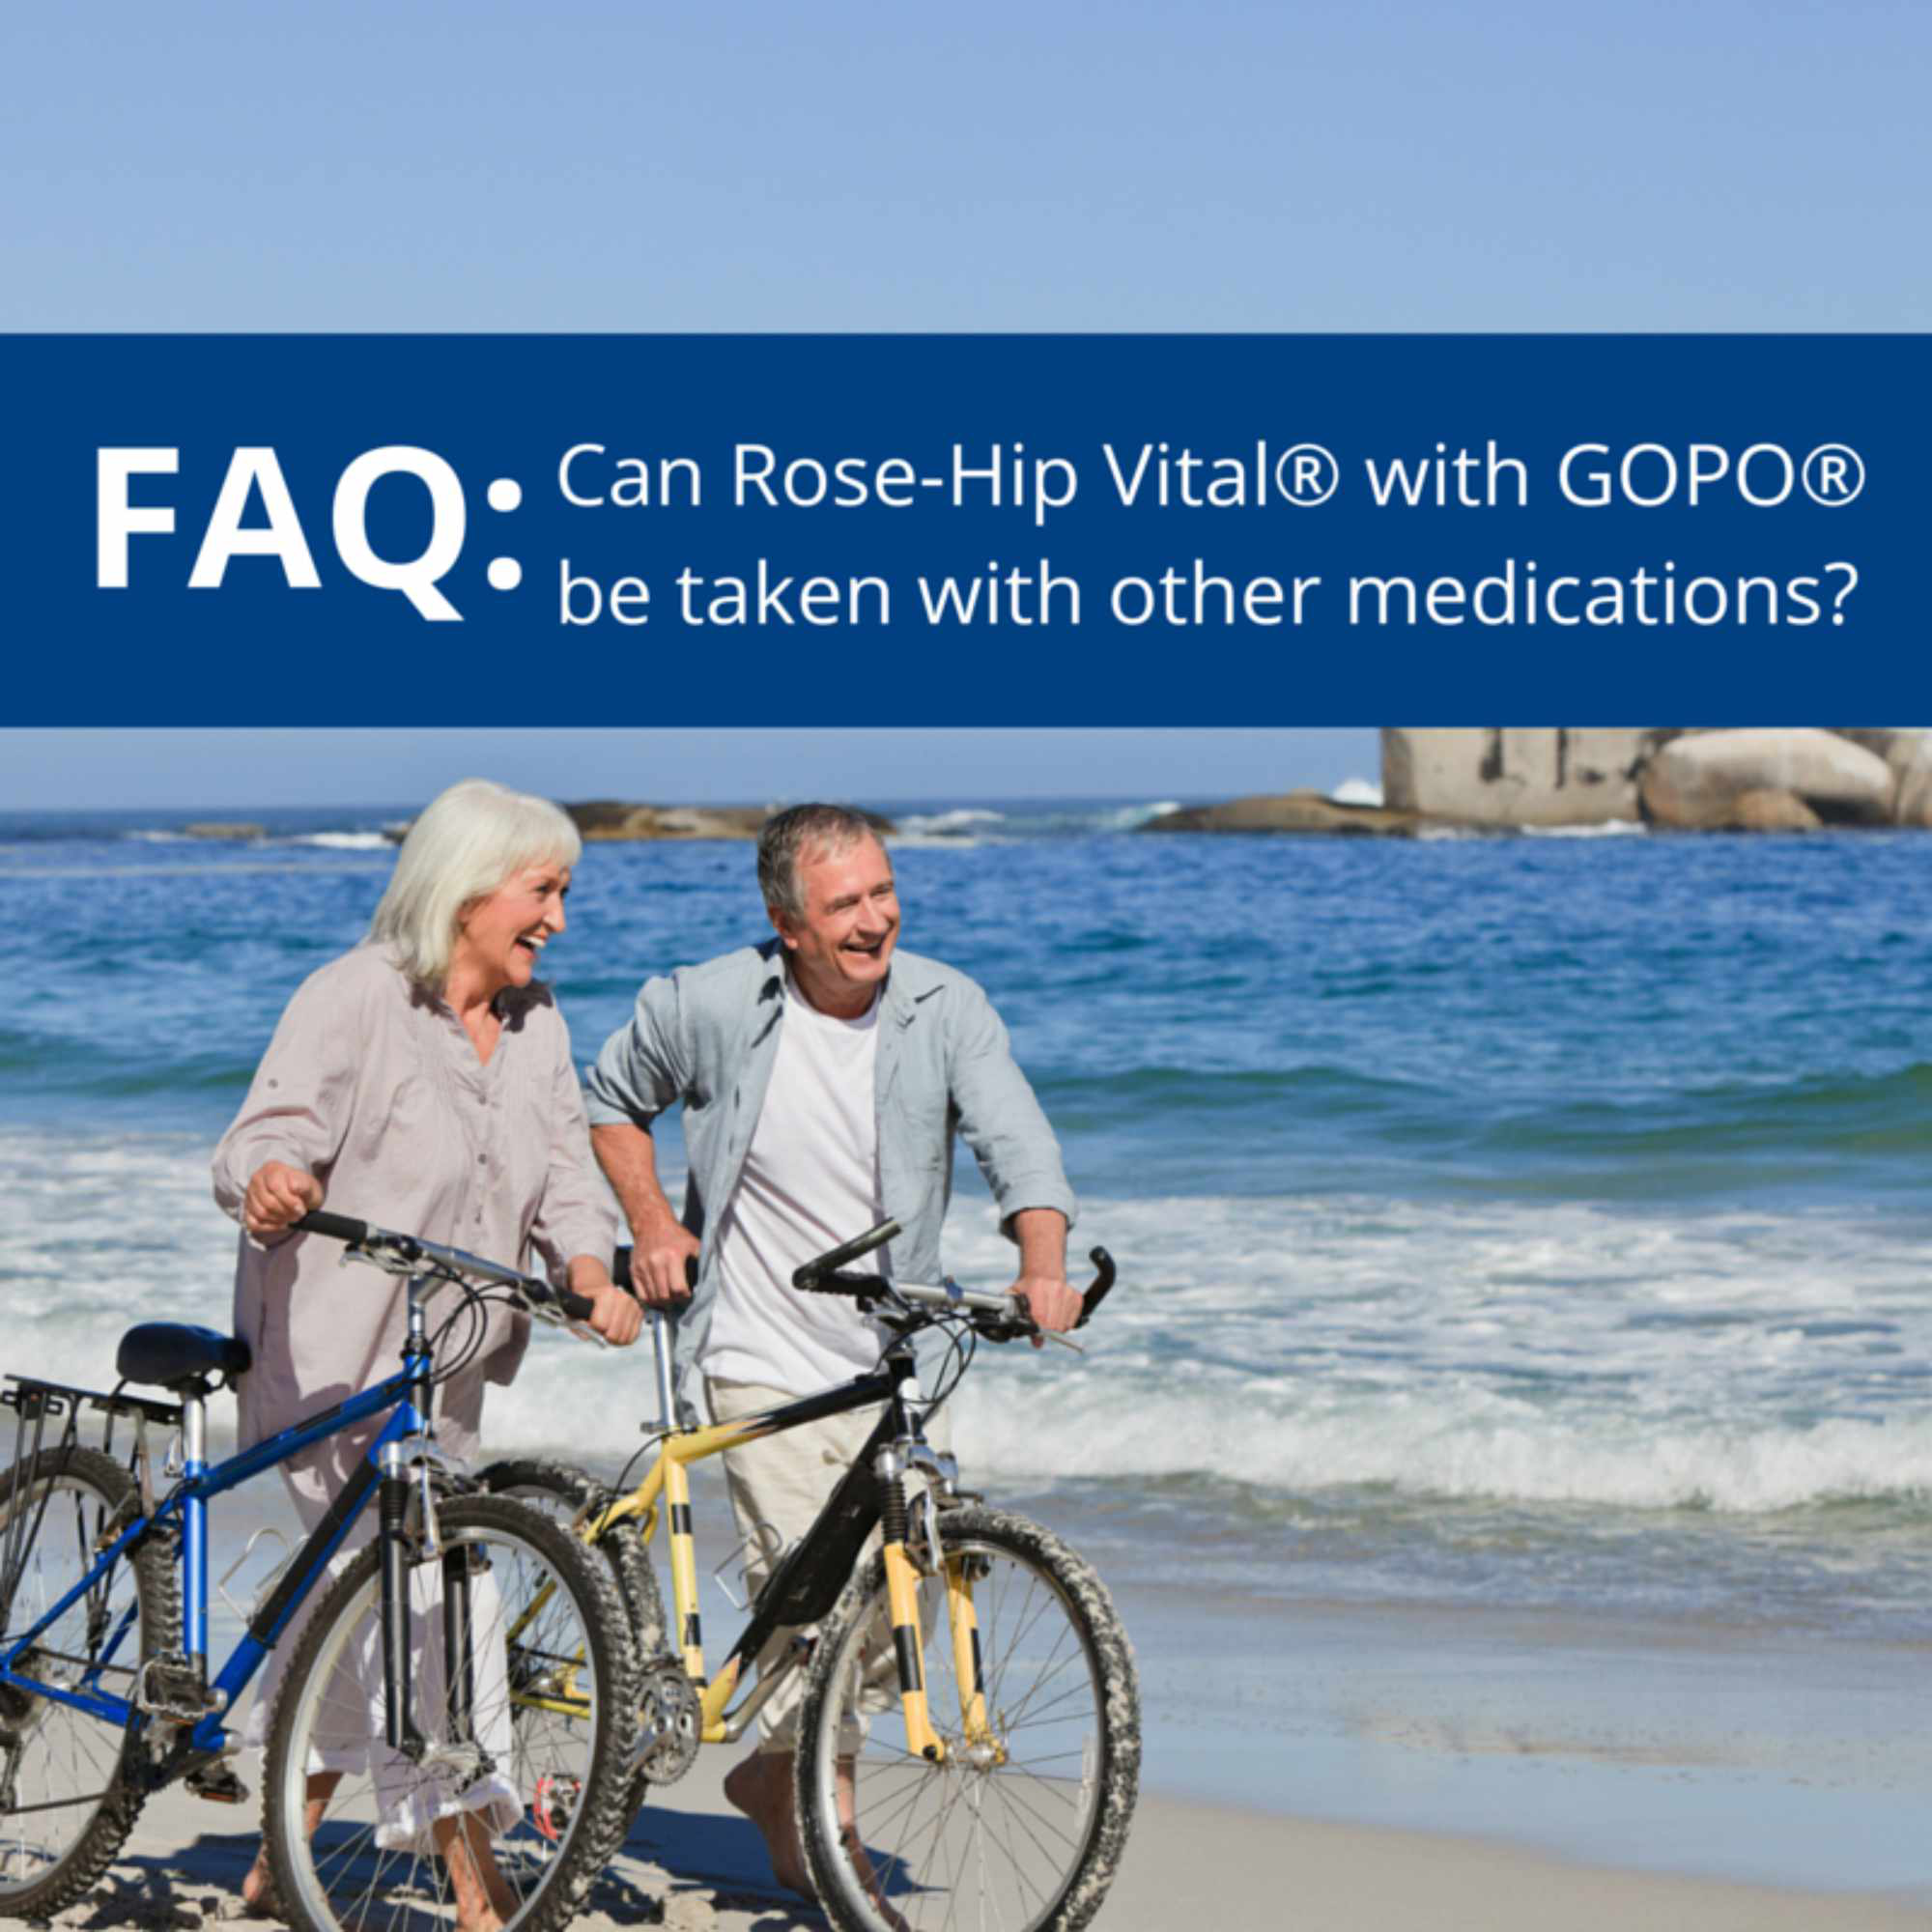 FAQ: Can Rose-Hip Vital® with GOPO® be taken with other medications and what are the side-effects?